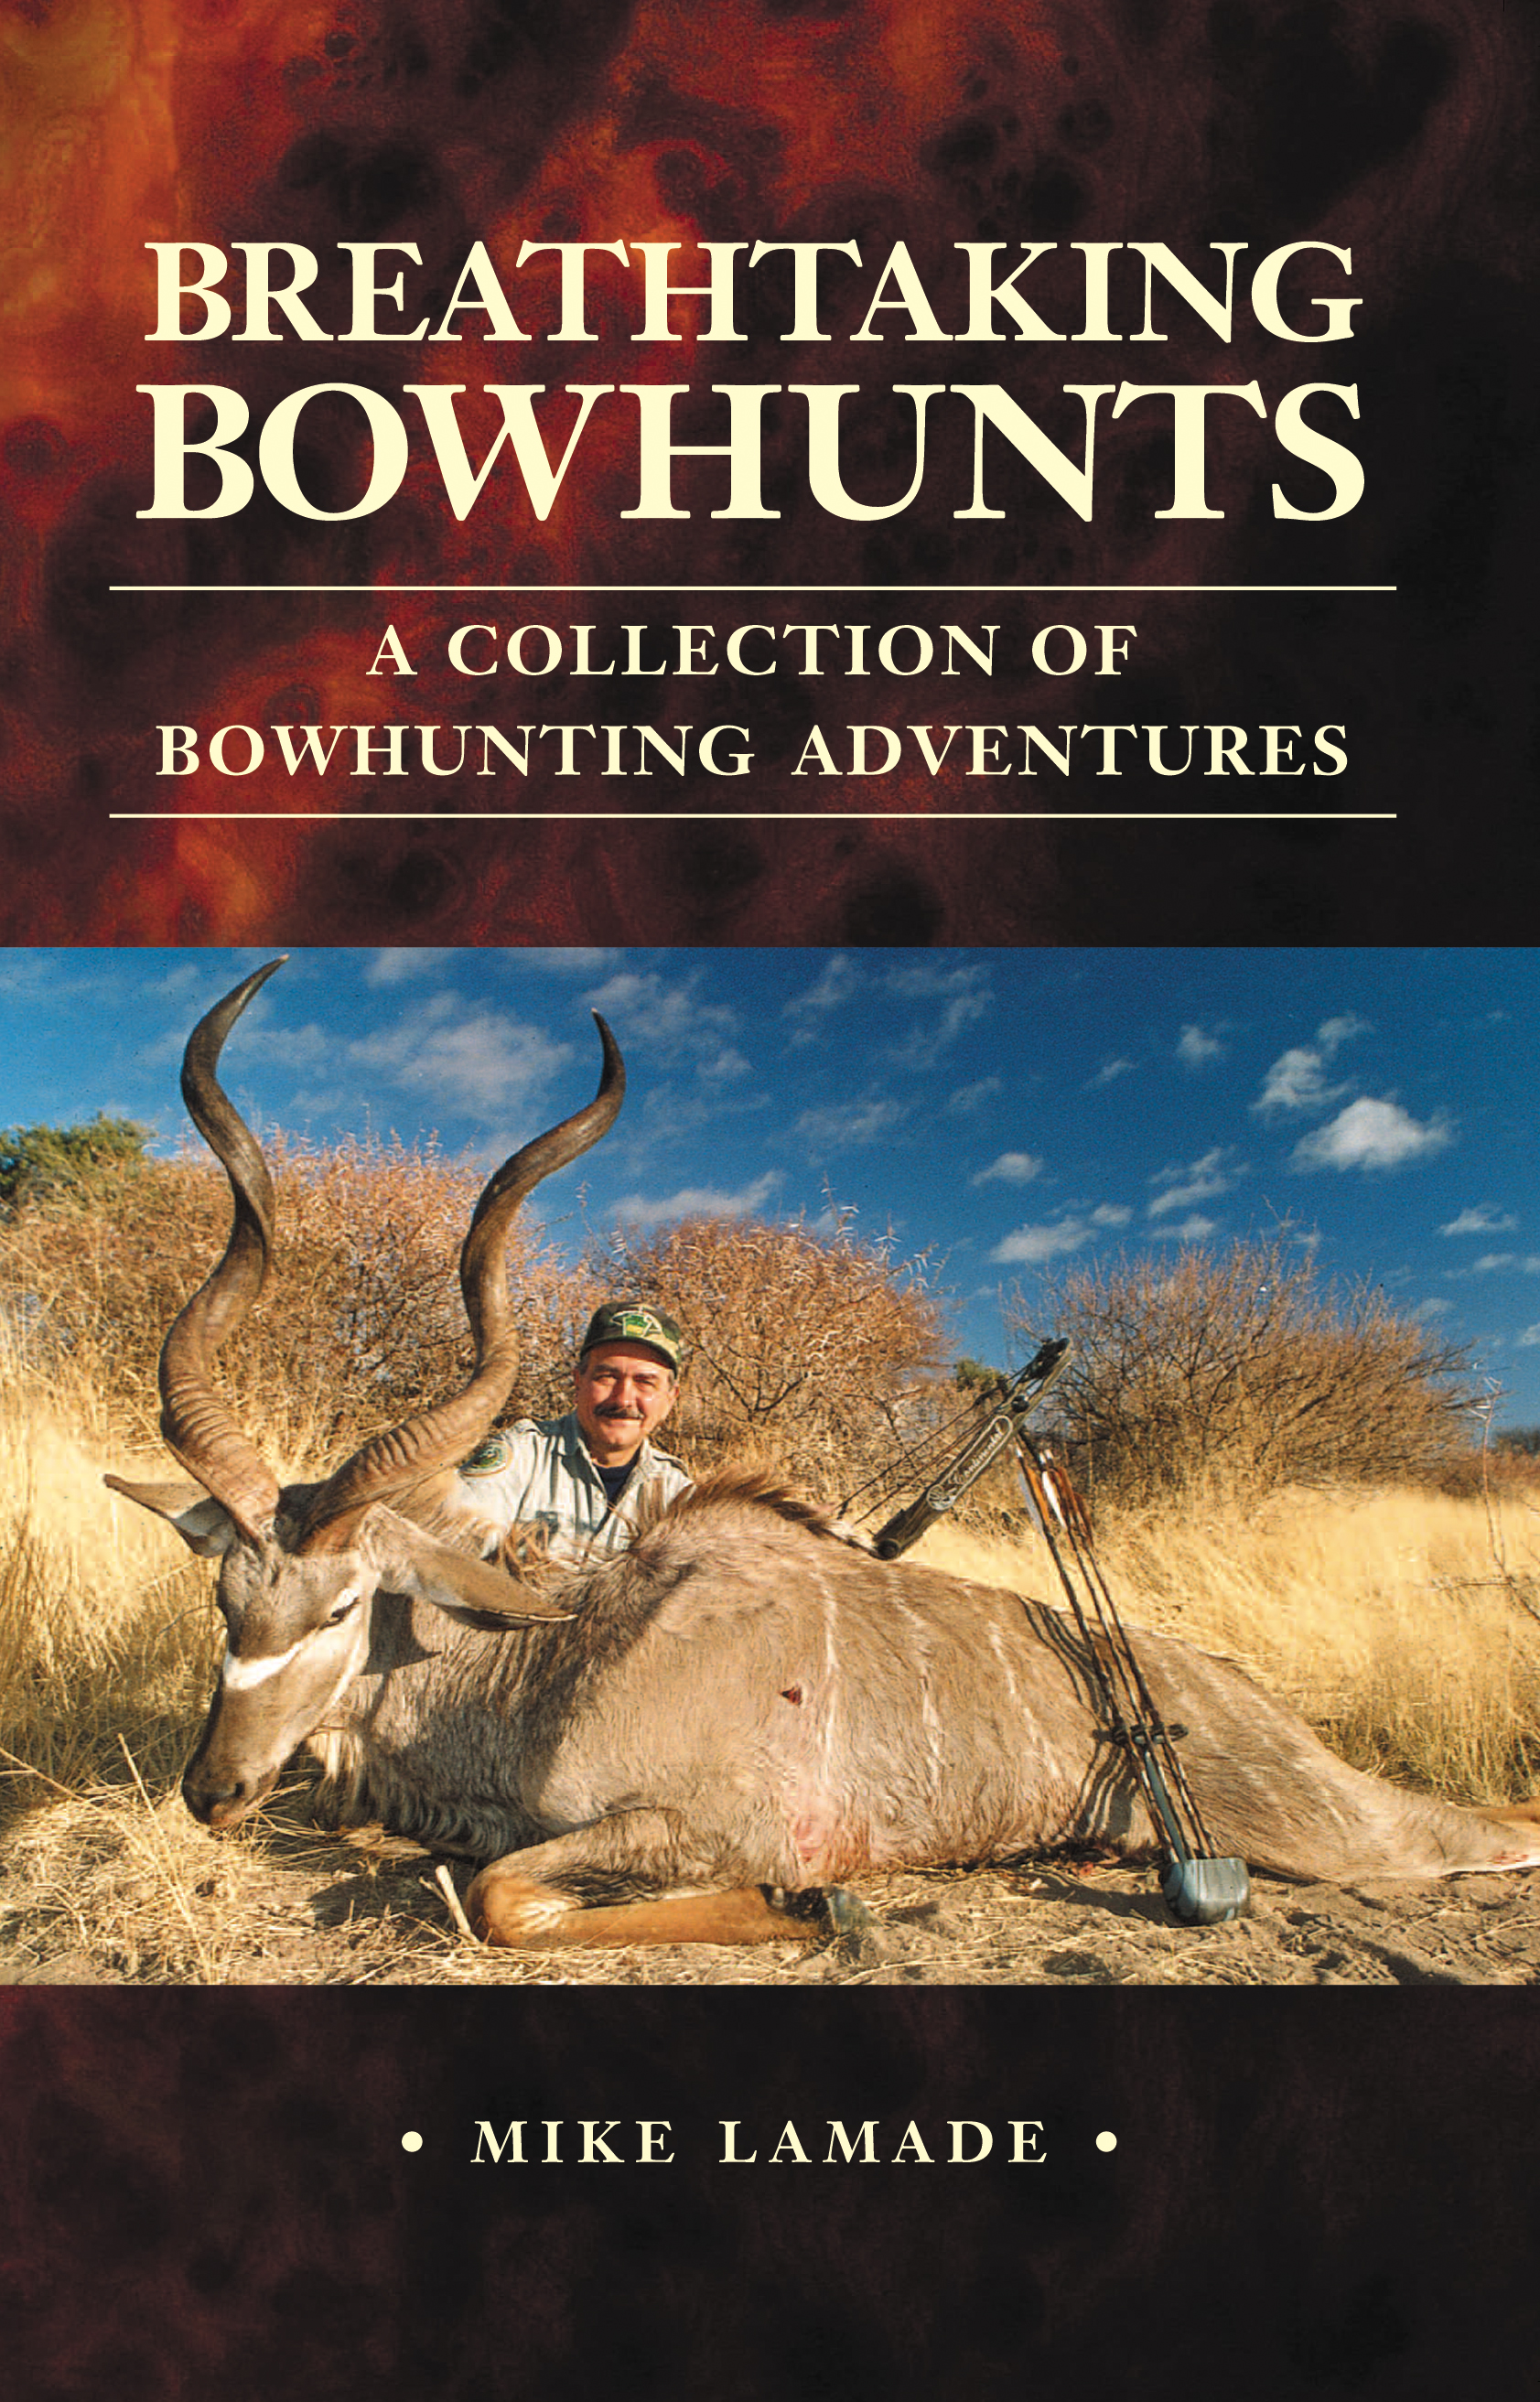 the early contributors to the development of the bowhunting sport